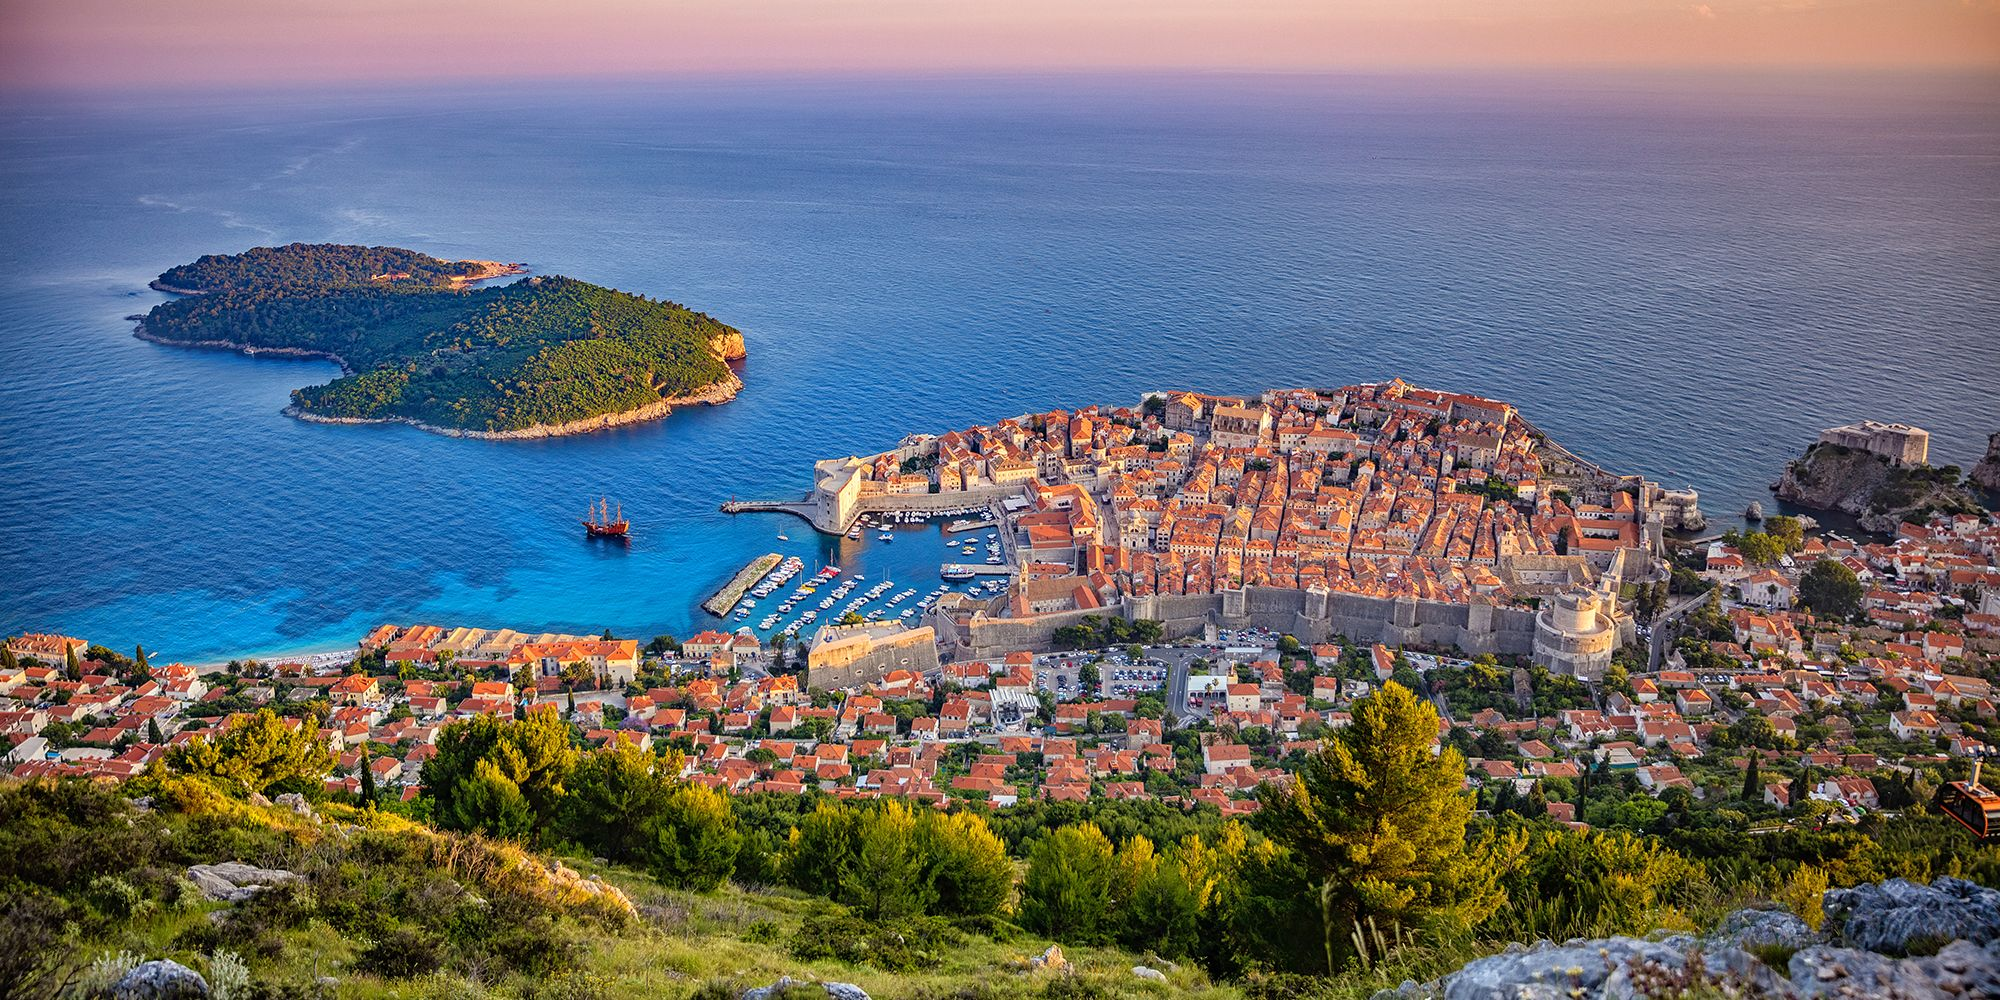 Urban Oasis Alert: See Our Master List of the Most Beautiful Cities in the World